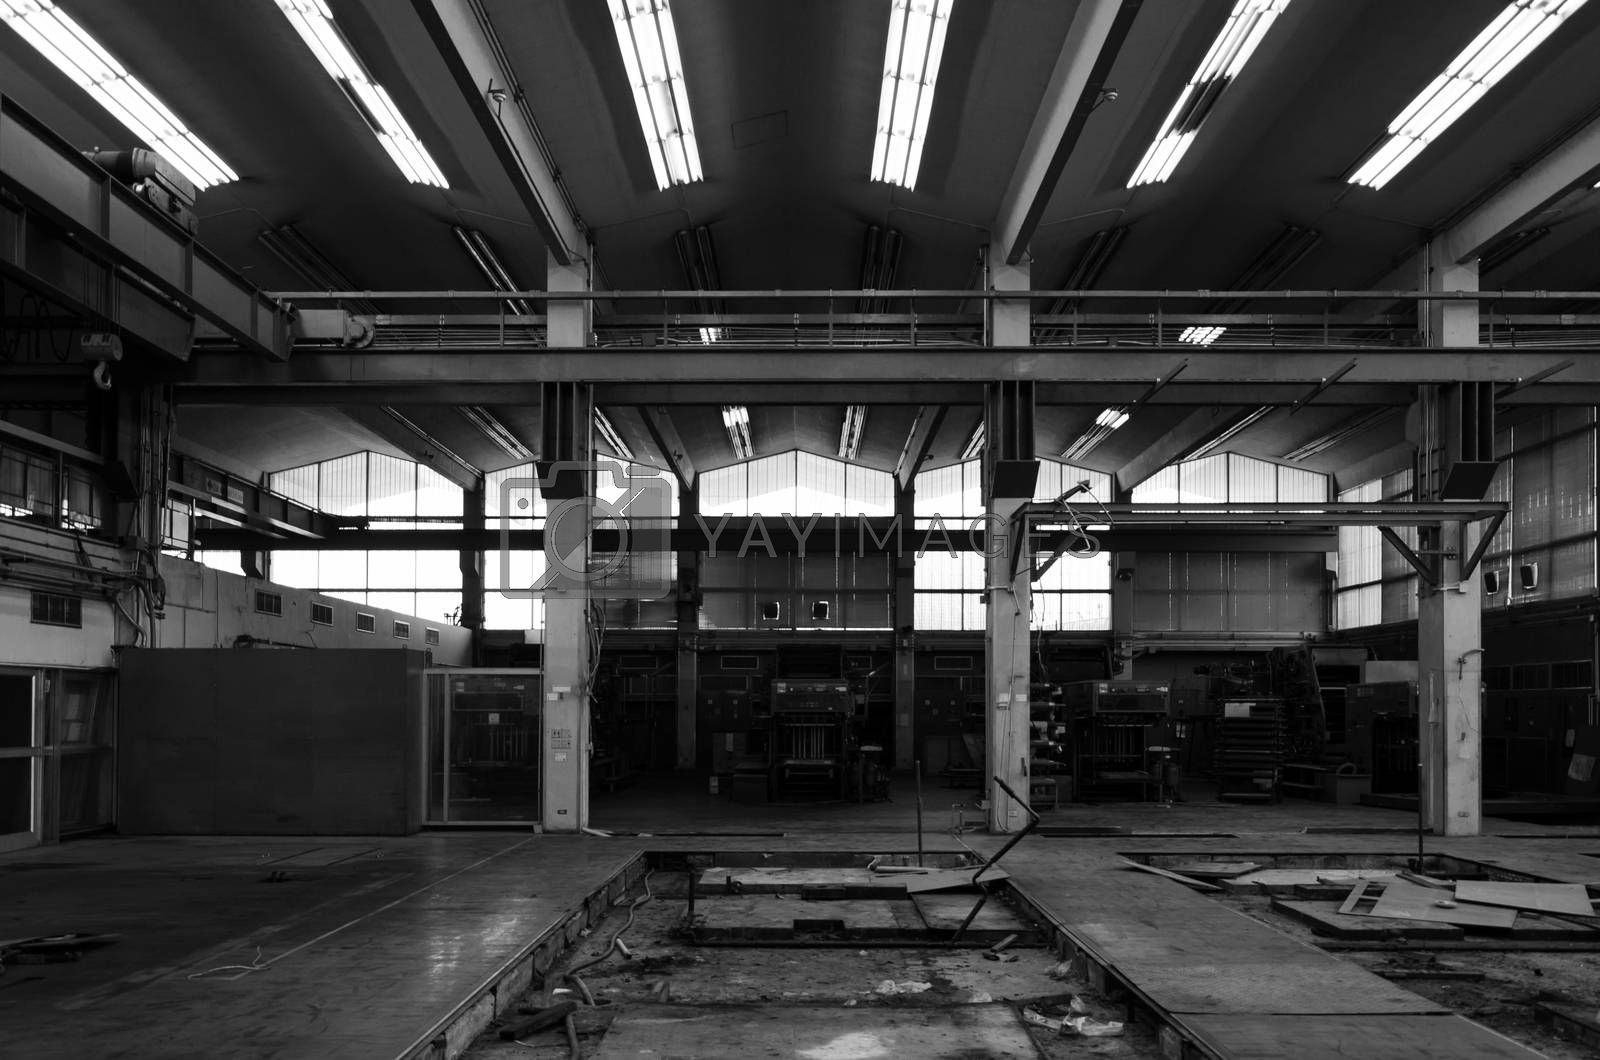 Abandon Industry Architecture by siraanamwong